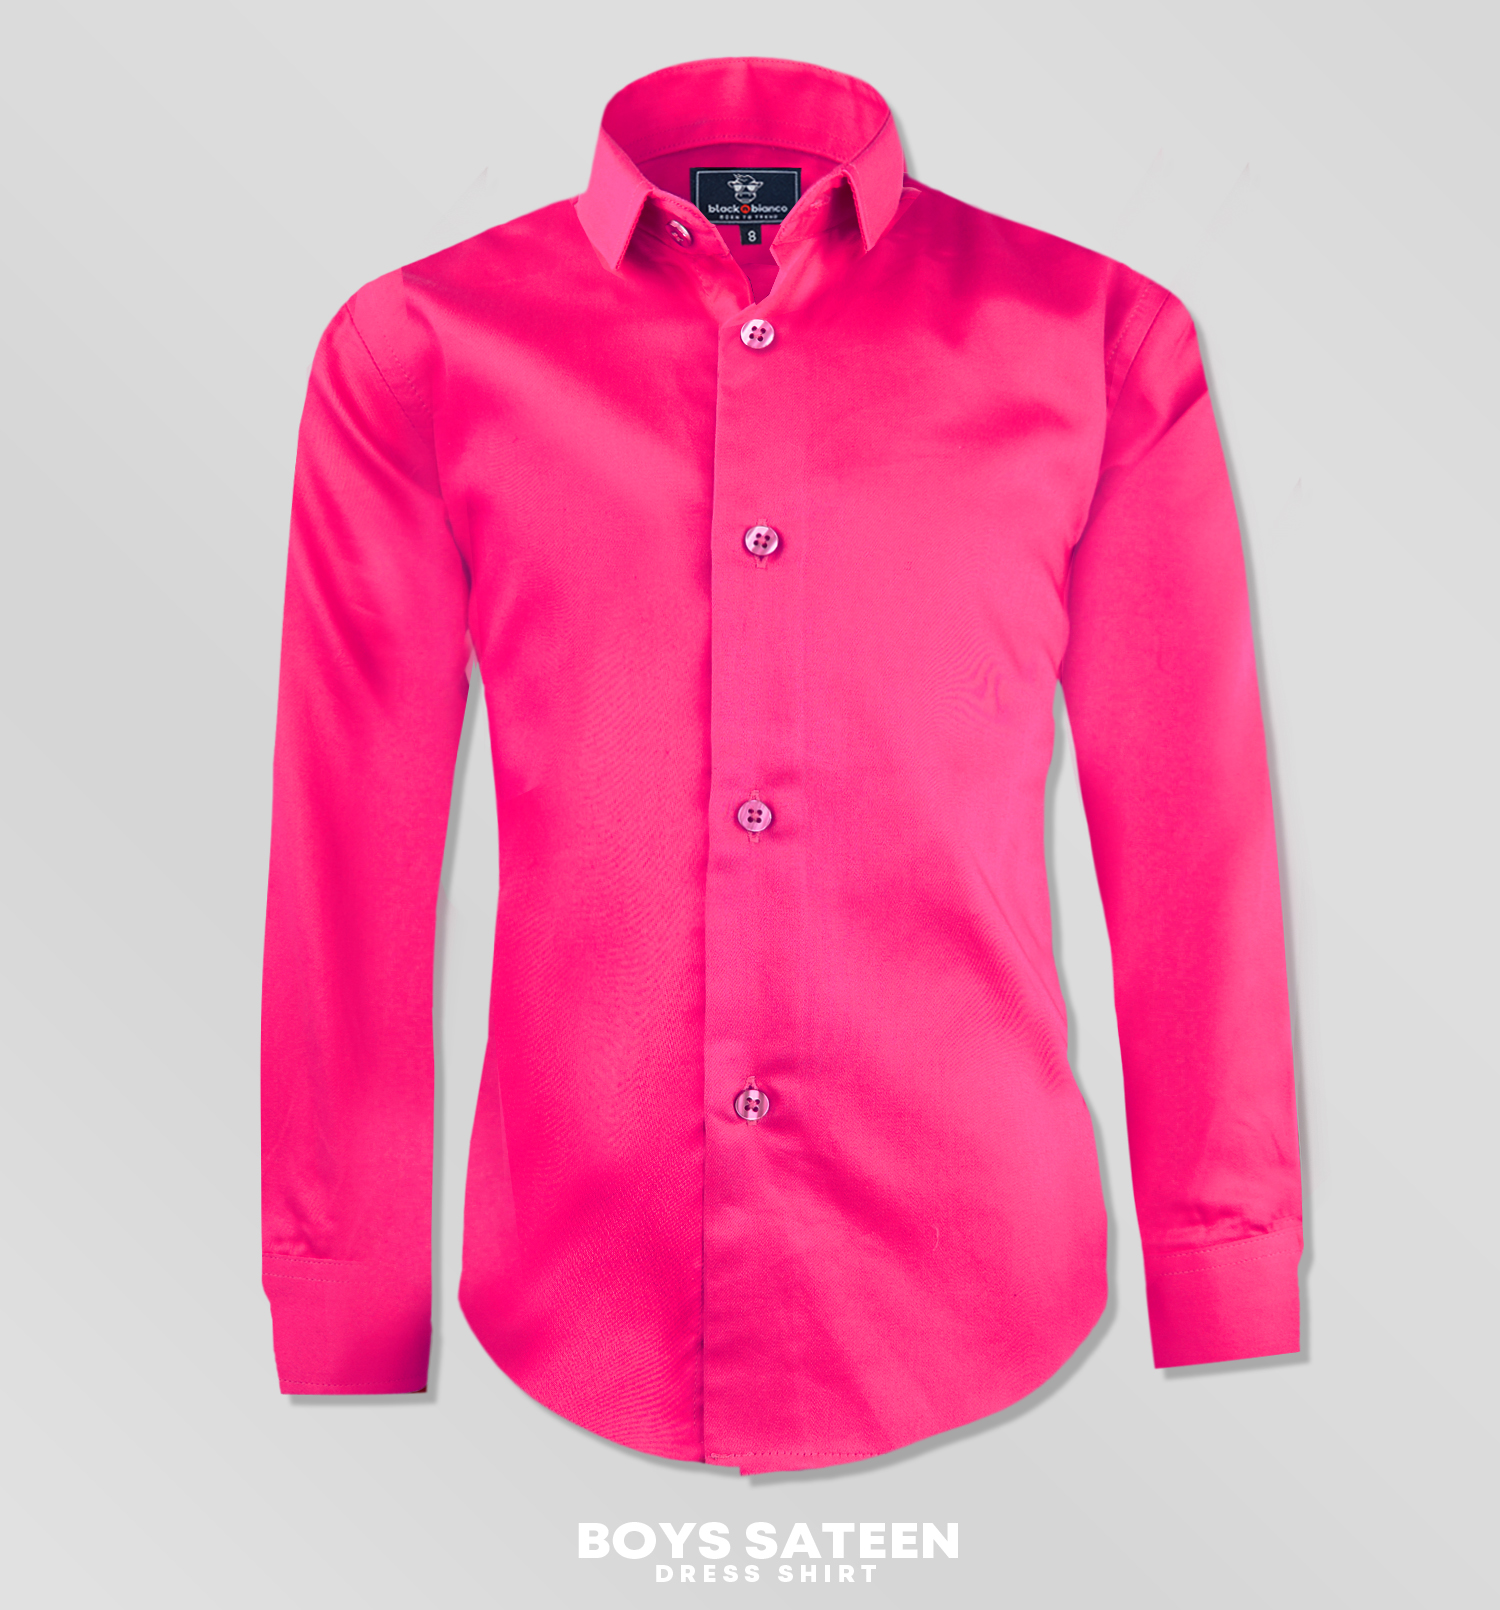 Black N Bianco Boys Signature Sateen Dress Shirt In Fuchsia